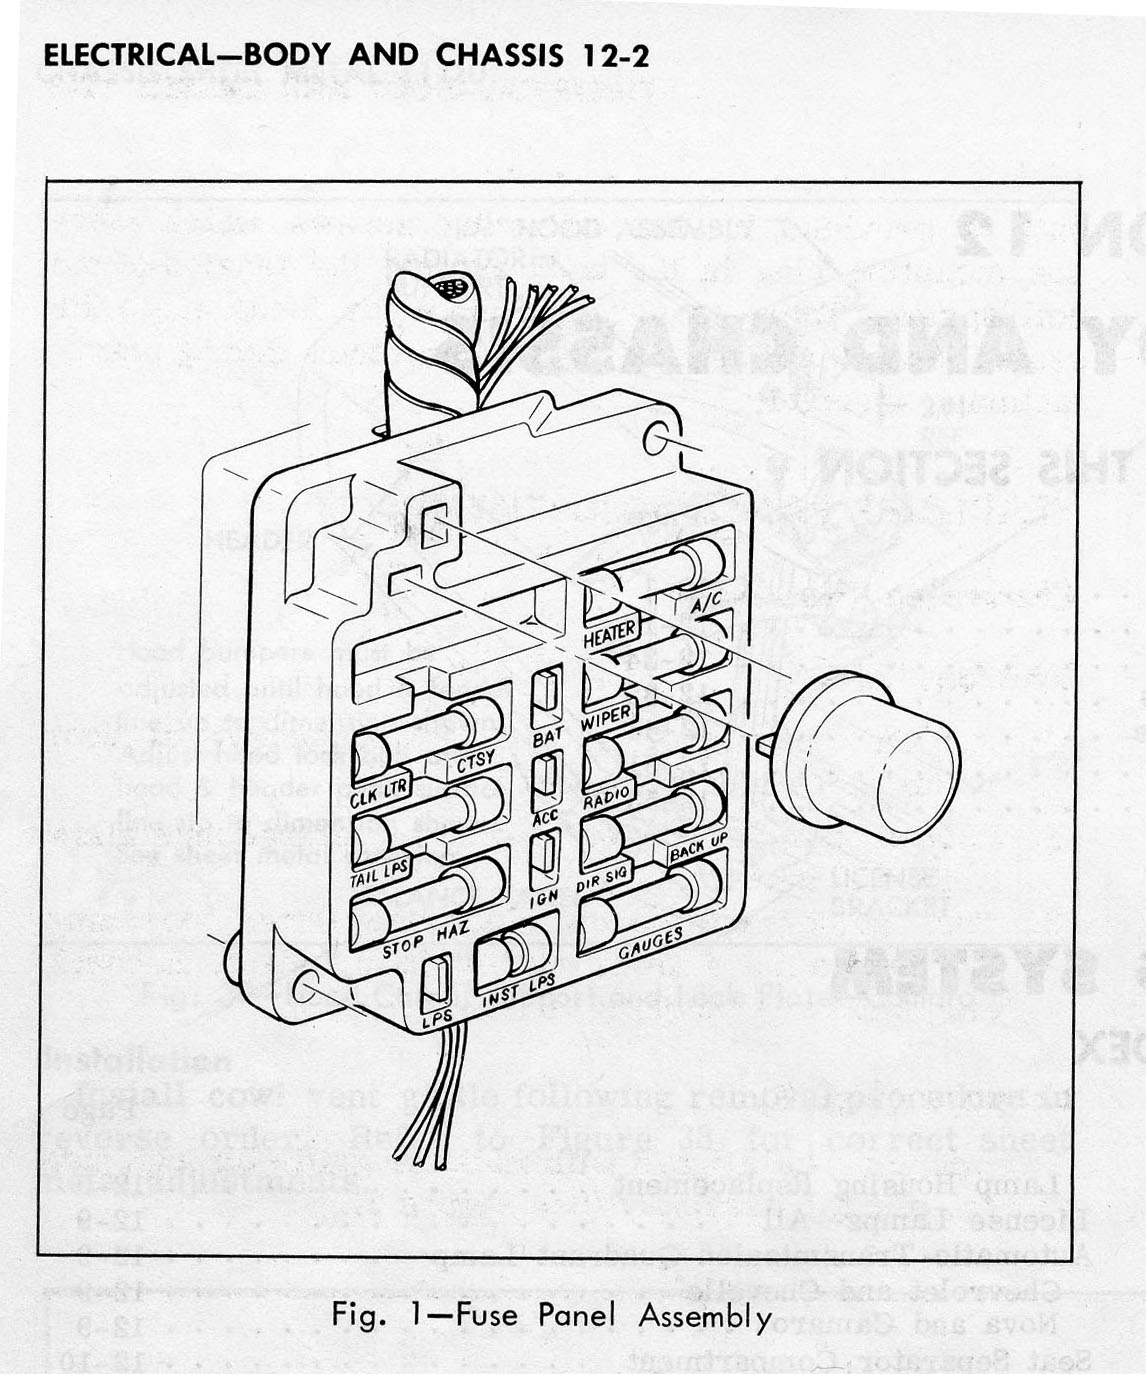 1969 Corvette Fuse Box Wiring Schematic 2019 89 Camaro Diagram 82 Get Free Image About Block